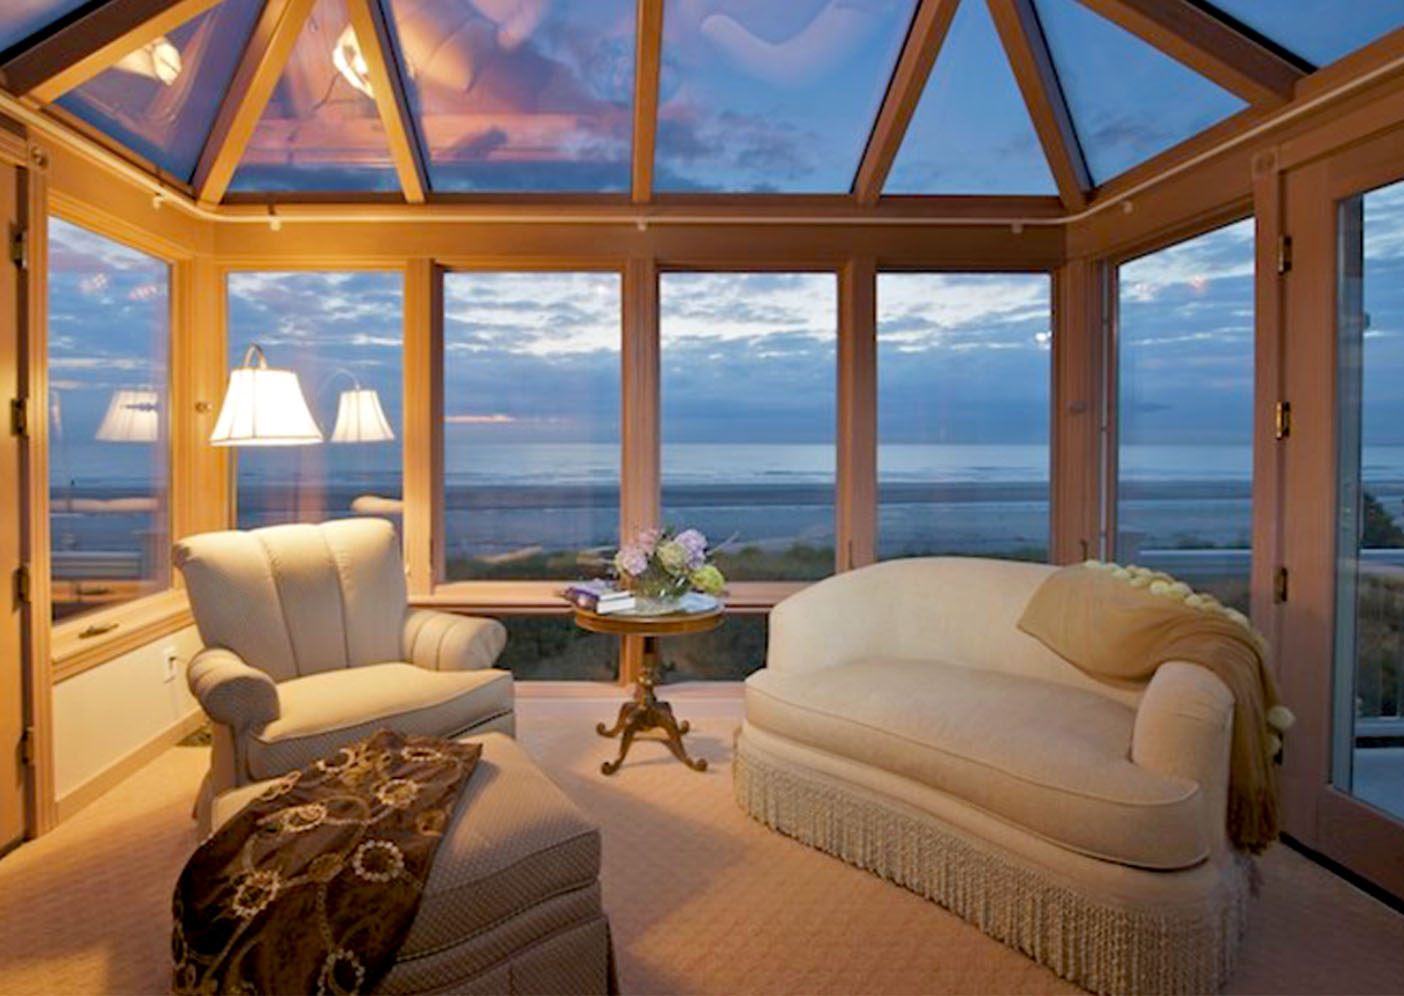 A beautiful sunset seen through a sunroom